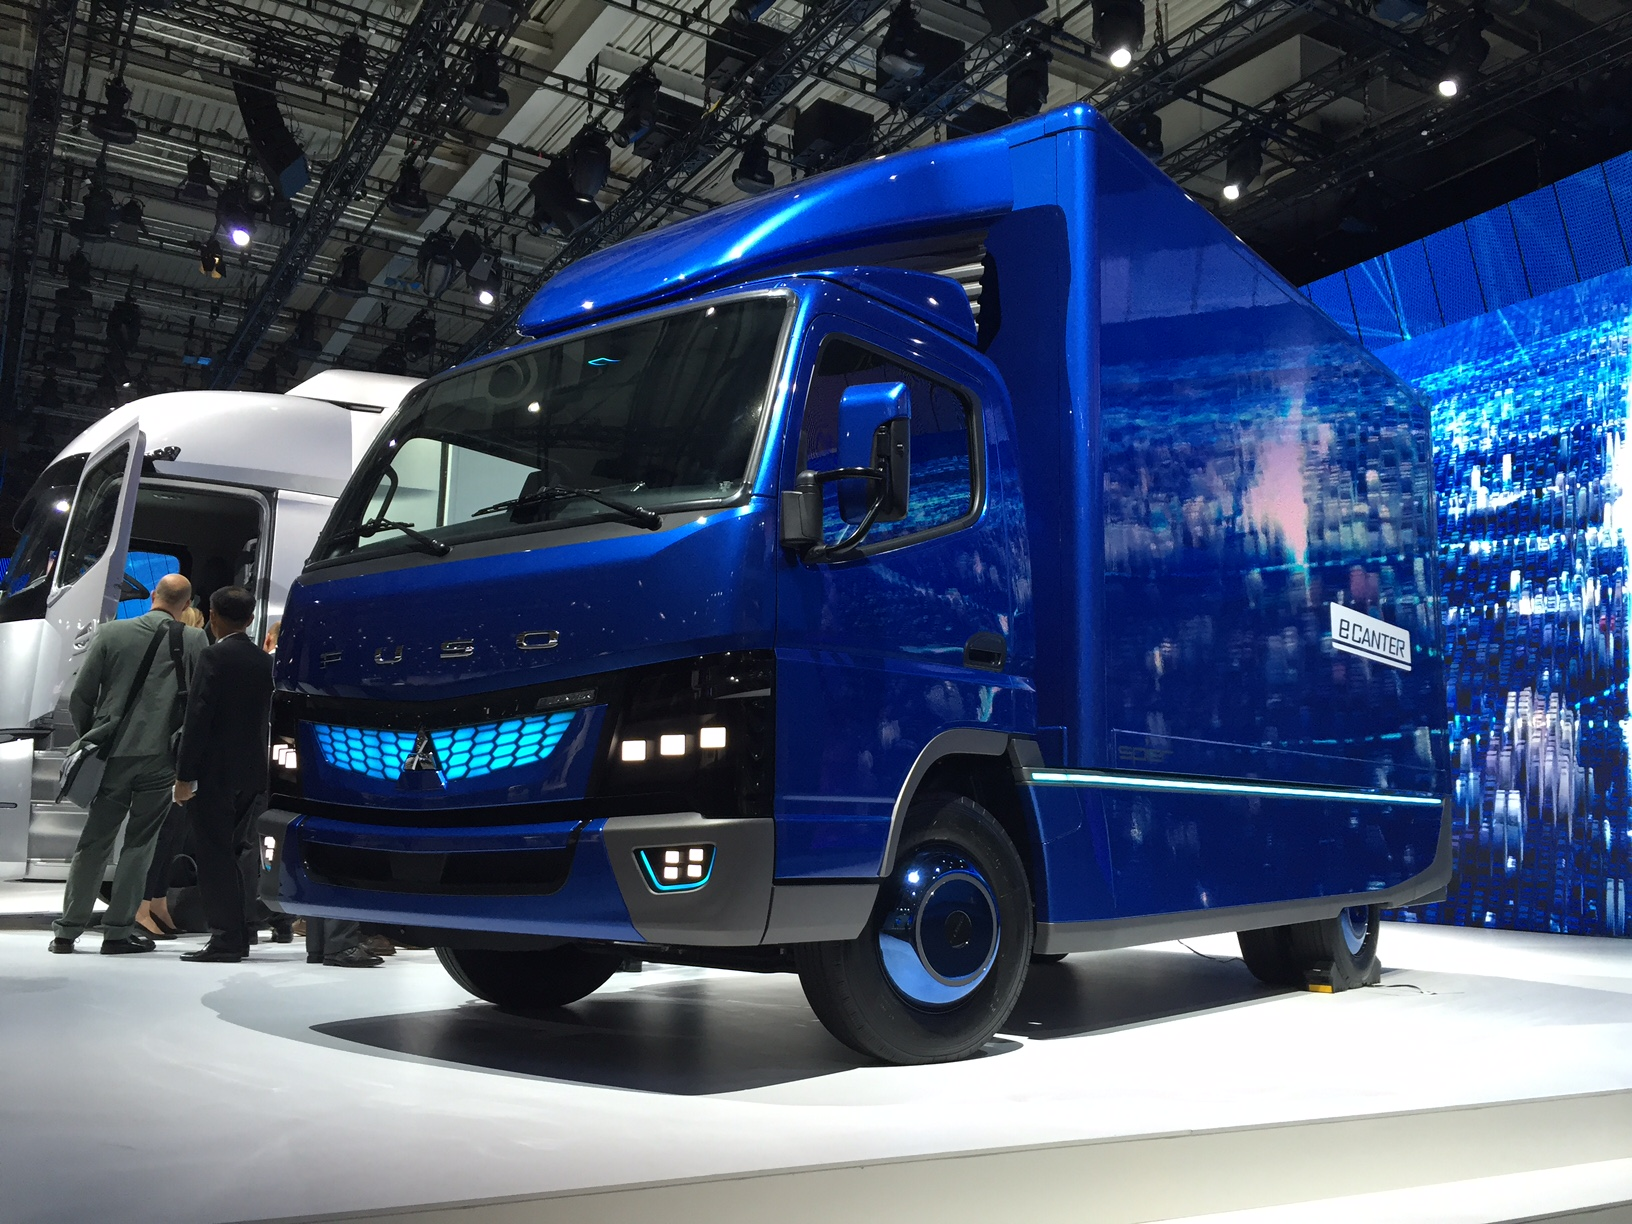 Daimler: Electric Delivery Trucks, Vans on the Way for U.S.